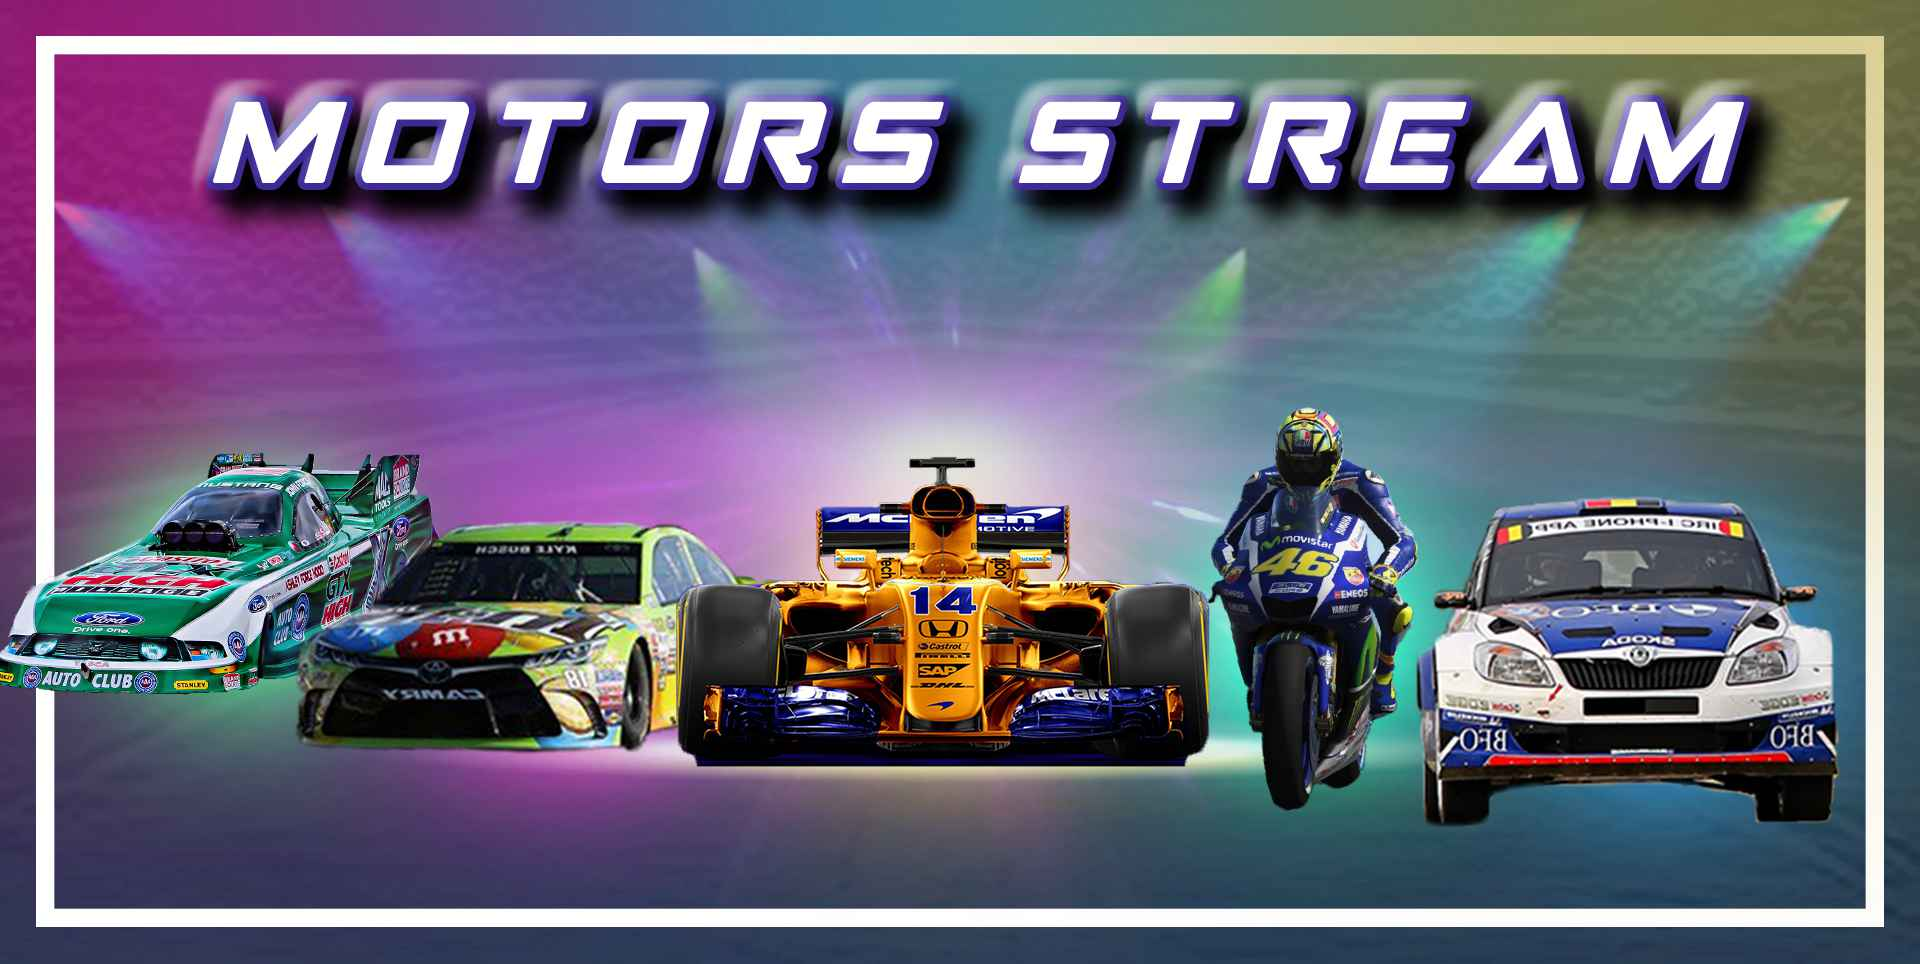 Thailand Grand Prix 2018 Live streaming